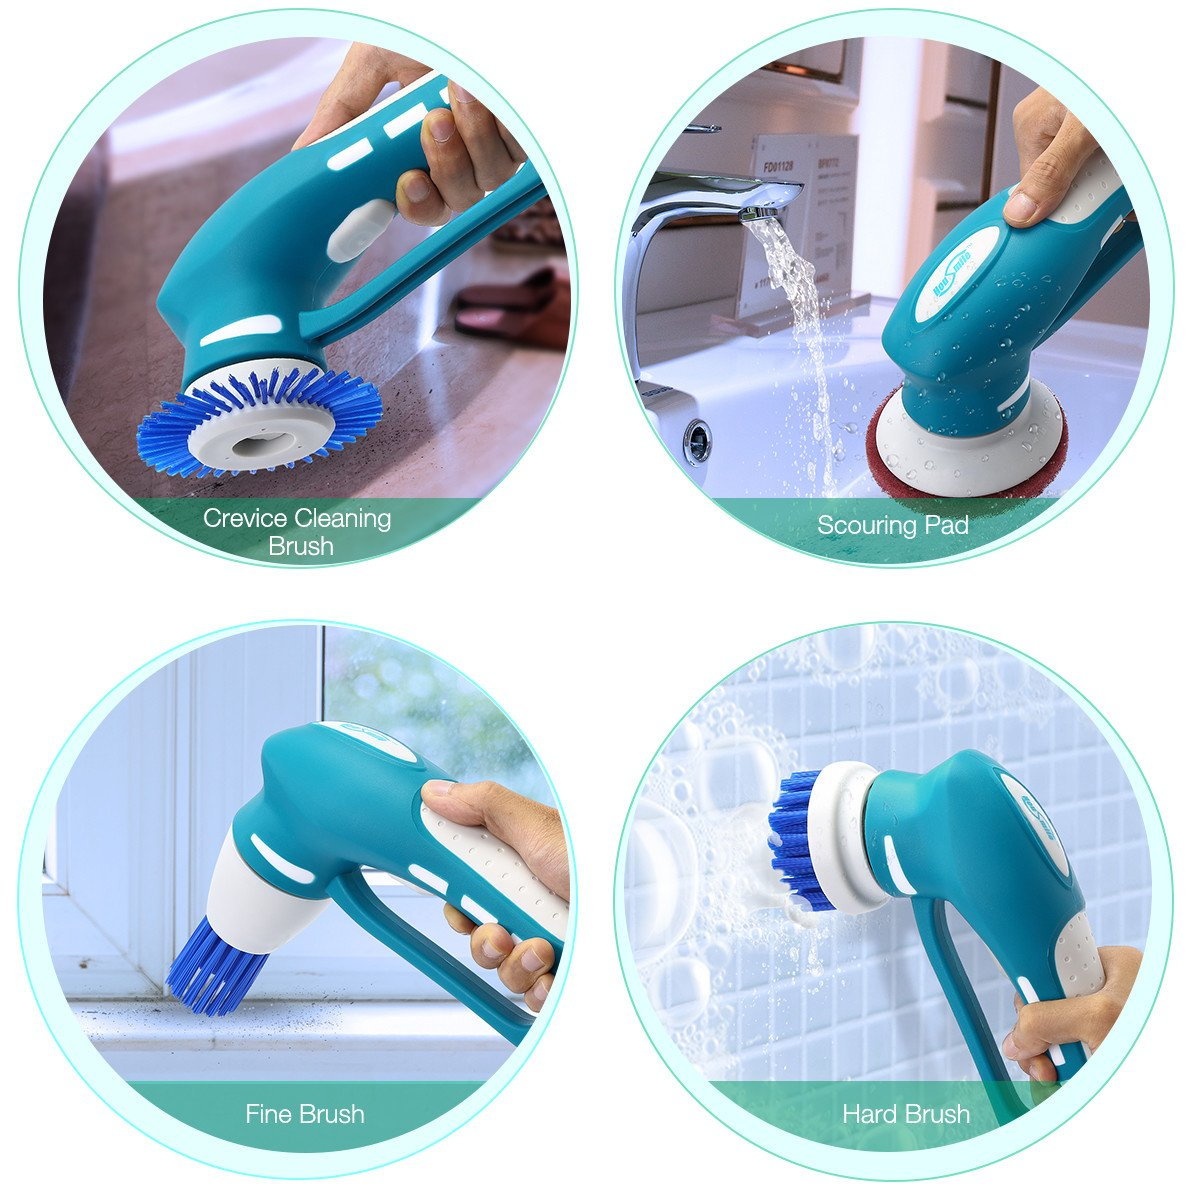 Housmile Electric Spin Scrubber, Floor Scrubber Cordless Tub and Tile Scrubber with 3 Replaceable Cleaning Scrubber Brush Heads 1 Scouring Pad, for Bathroom, Floor, Wall and Kitchen by Housmile (Image #2)